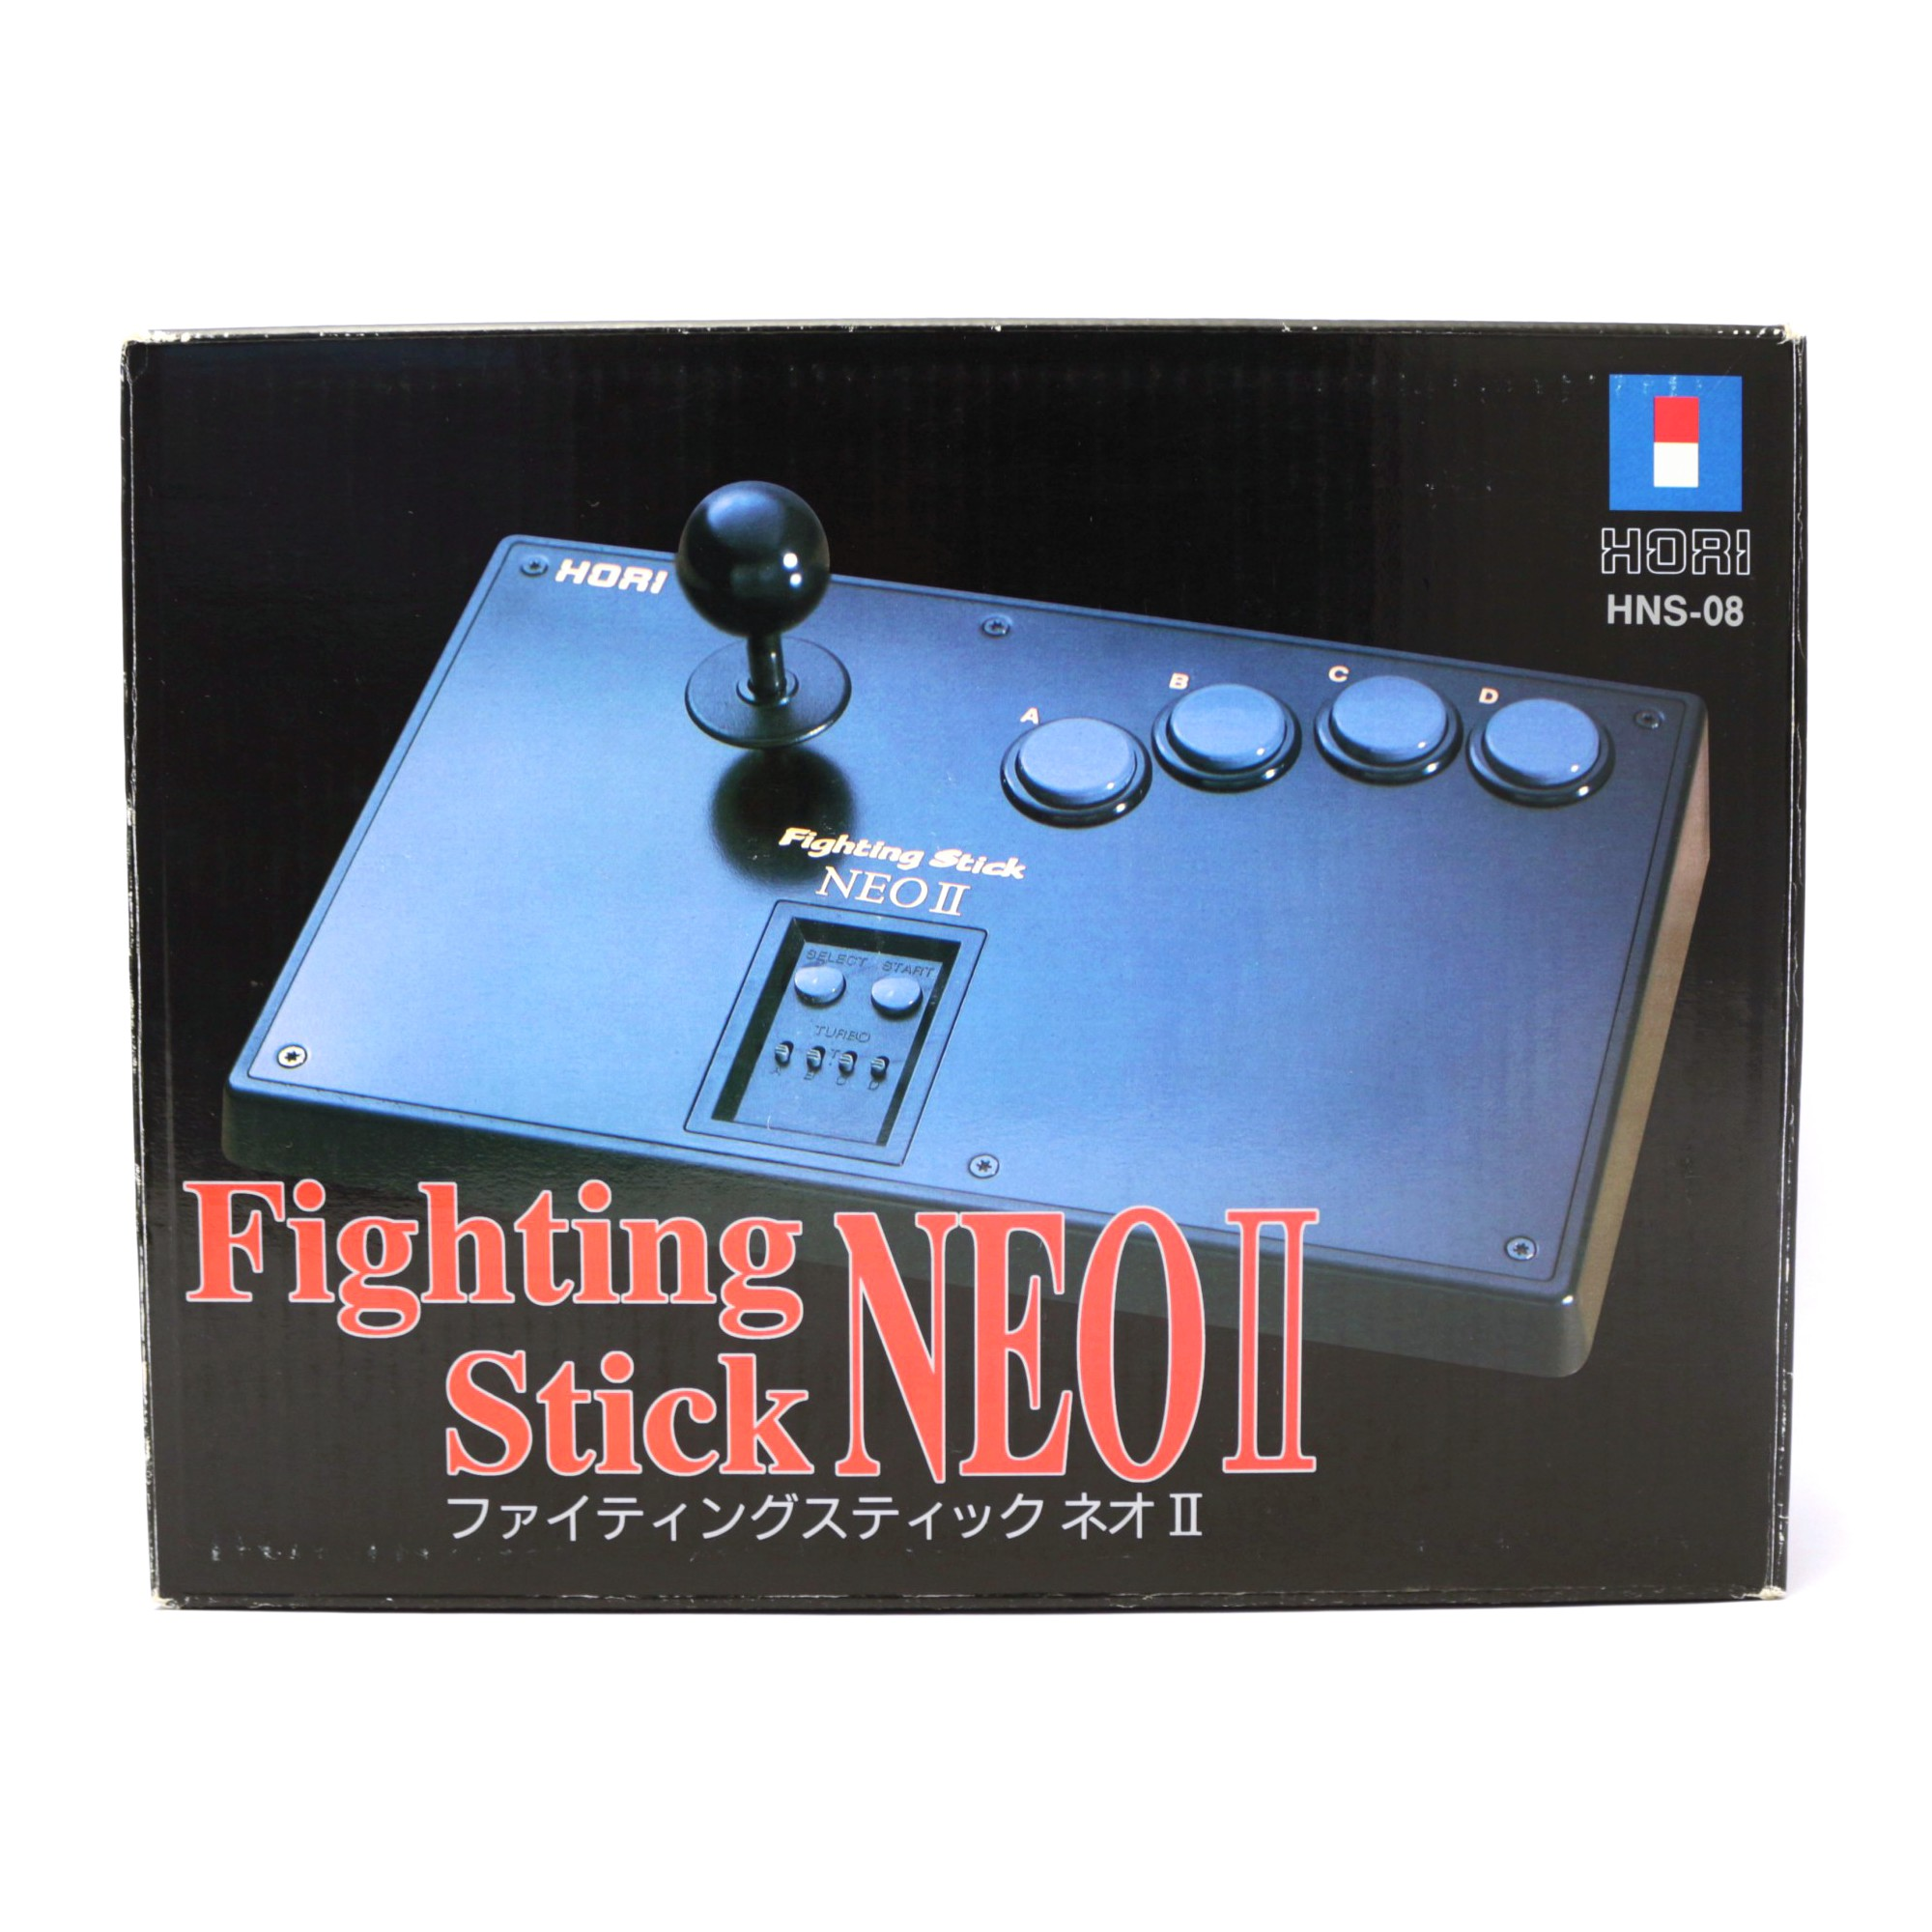 Neo Geo CD - Arcade / Fighting Stick NEO II / 2 / HNS-08 #schwarz [Hori]